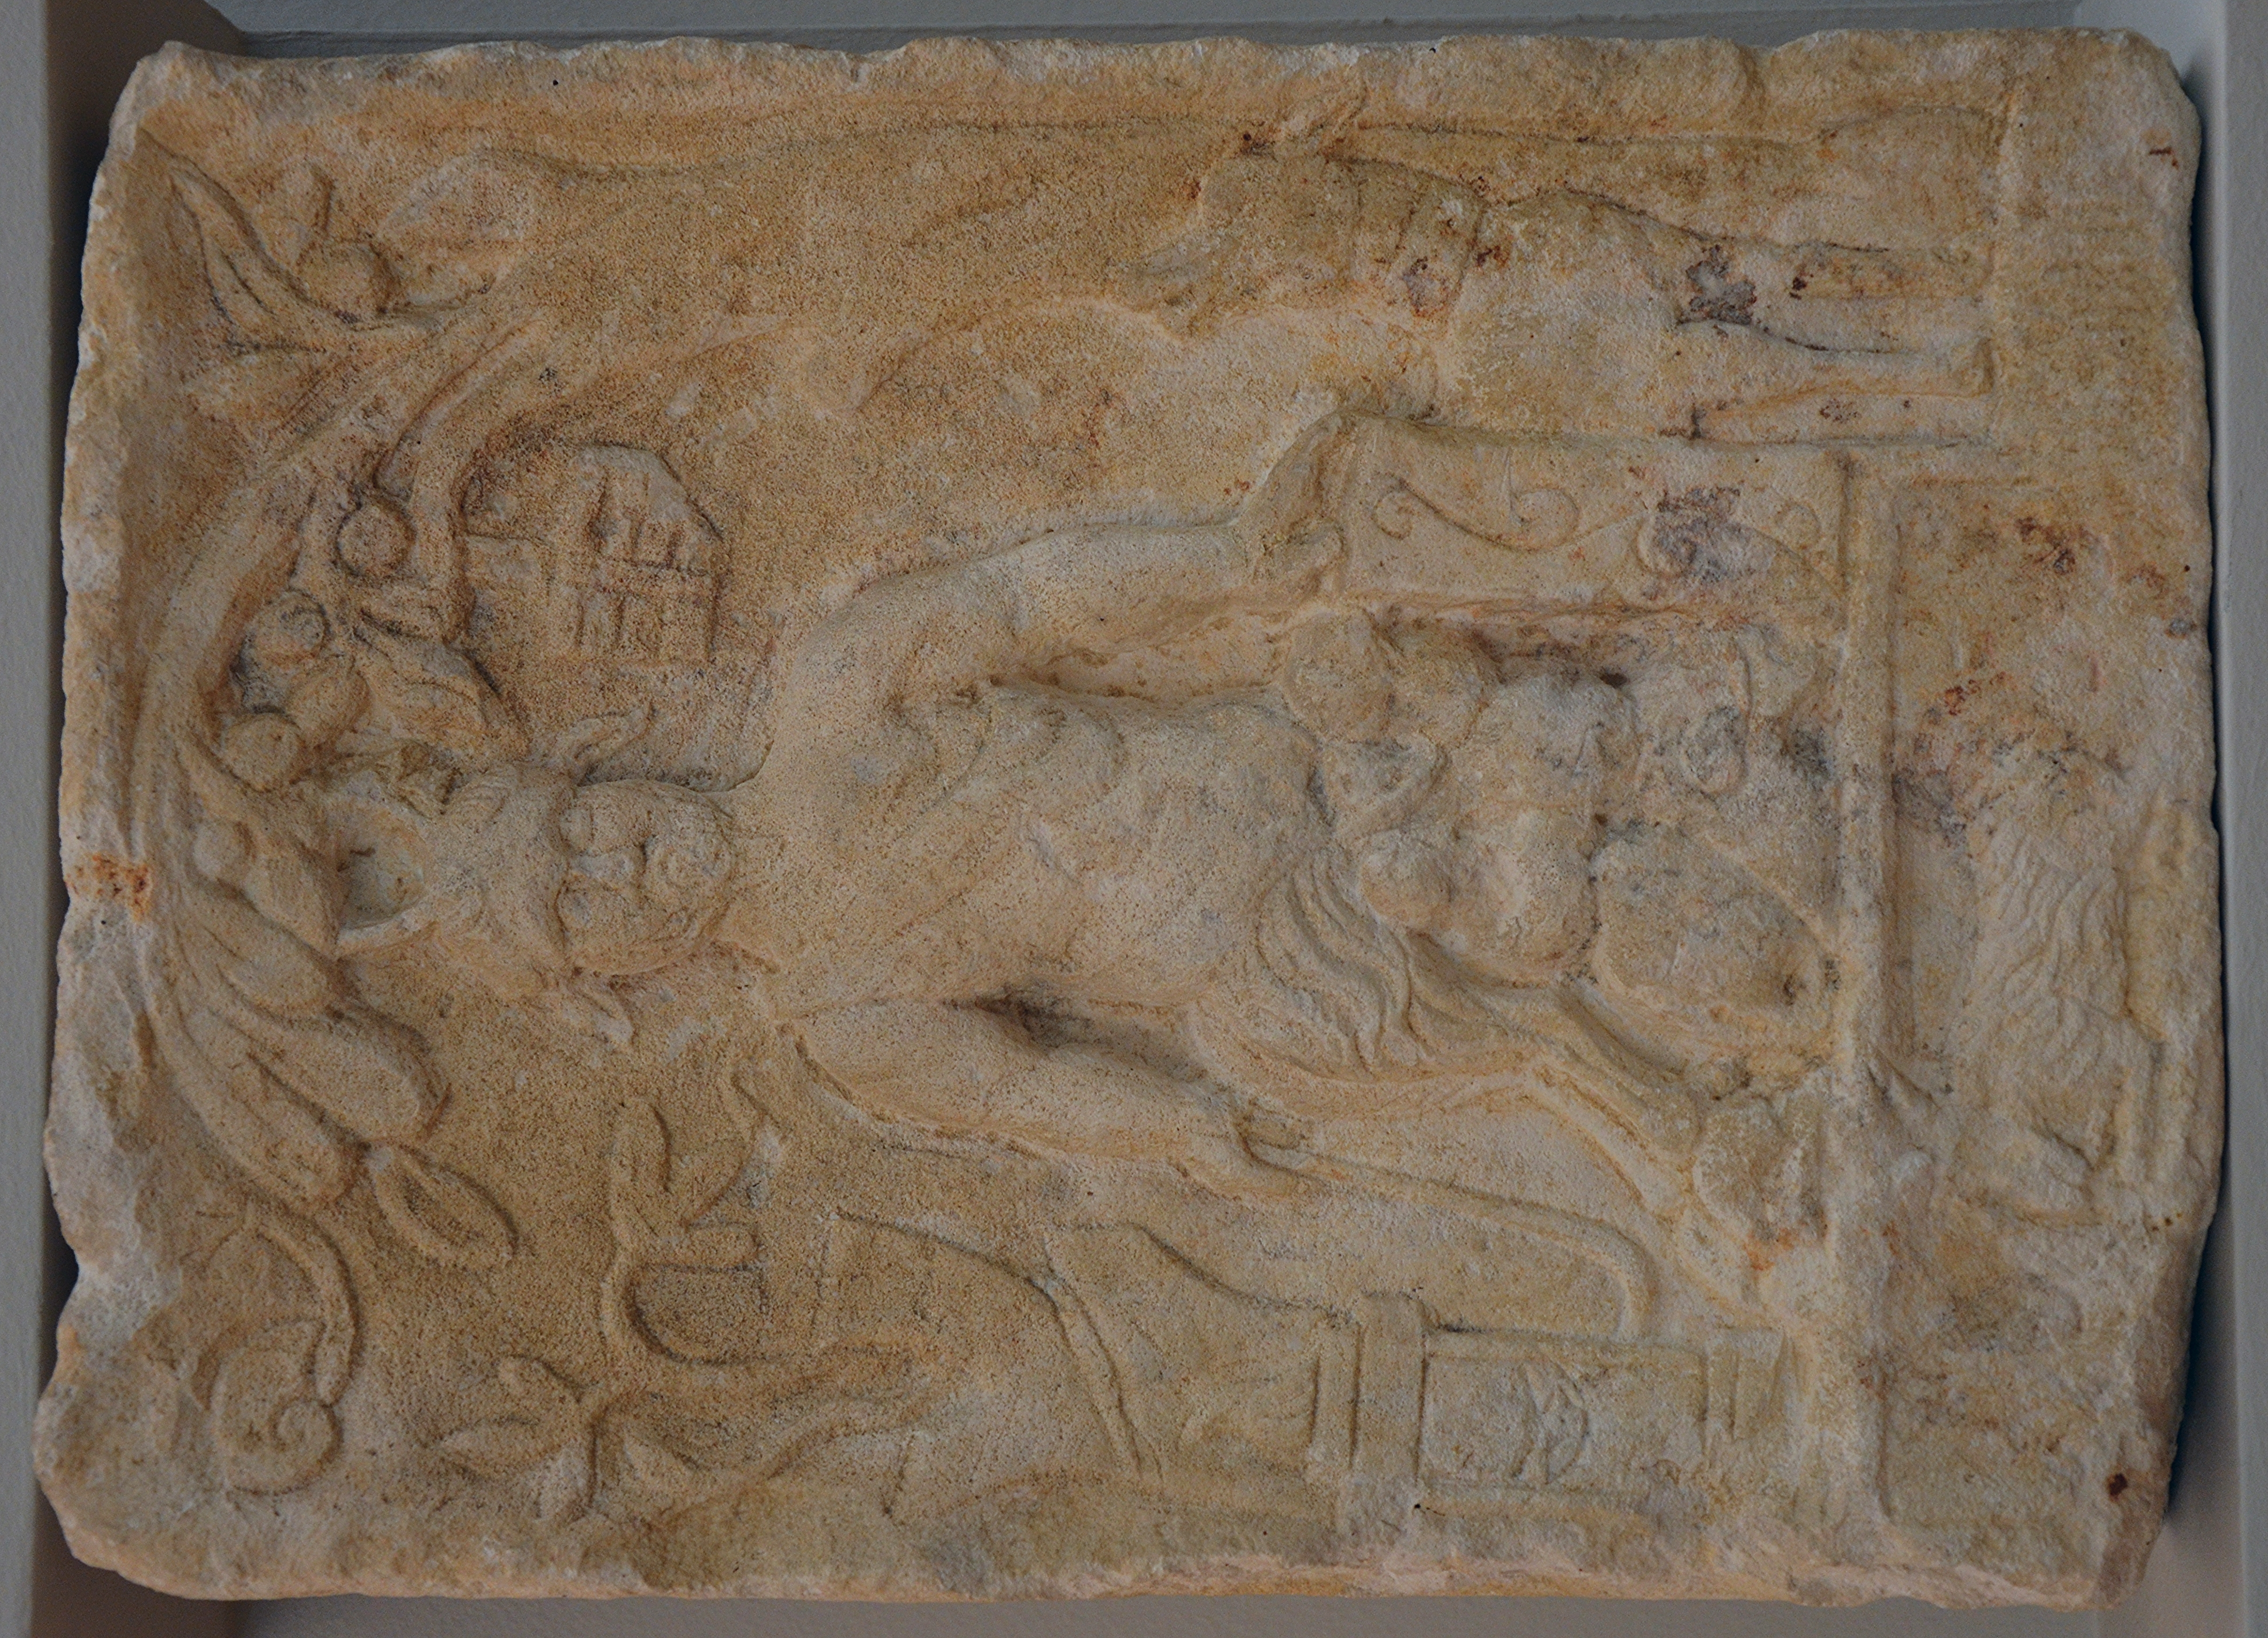 httpsuploadwikimediaorgwikipediacommons884Votive_relief_of_Silvanus_28with_iconography_of_Pan292C_from_Split2C_ca_2nd-3rd_century_AD2C_Split_Archaeological_Museum_281042121317429jpg